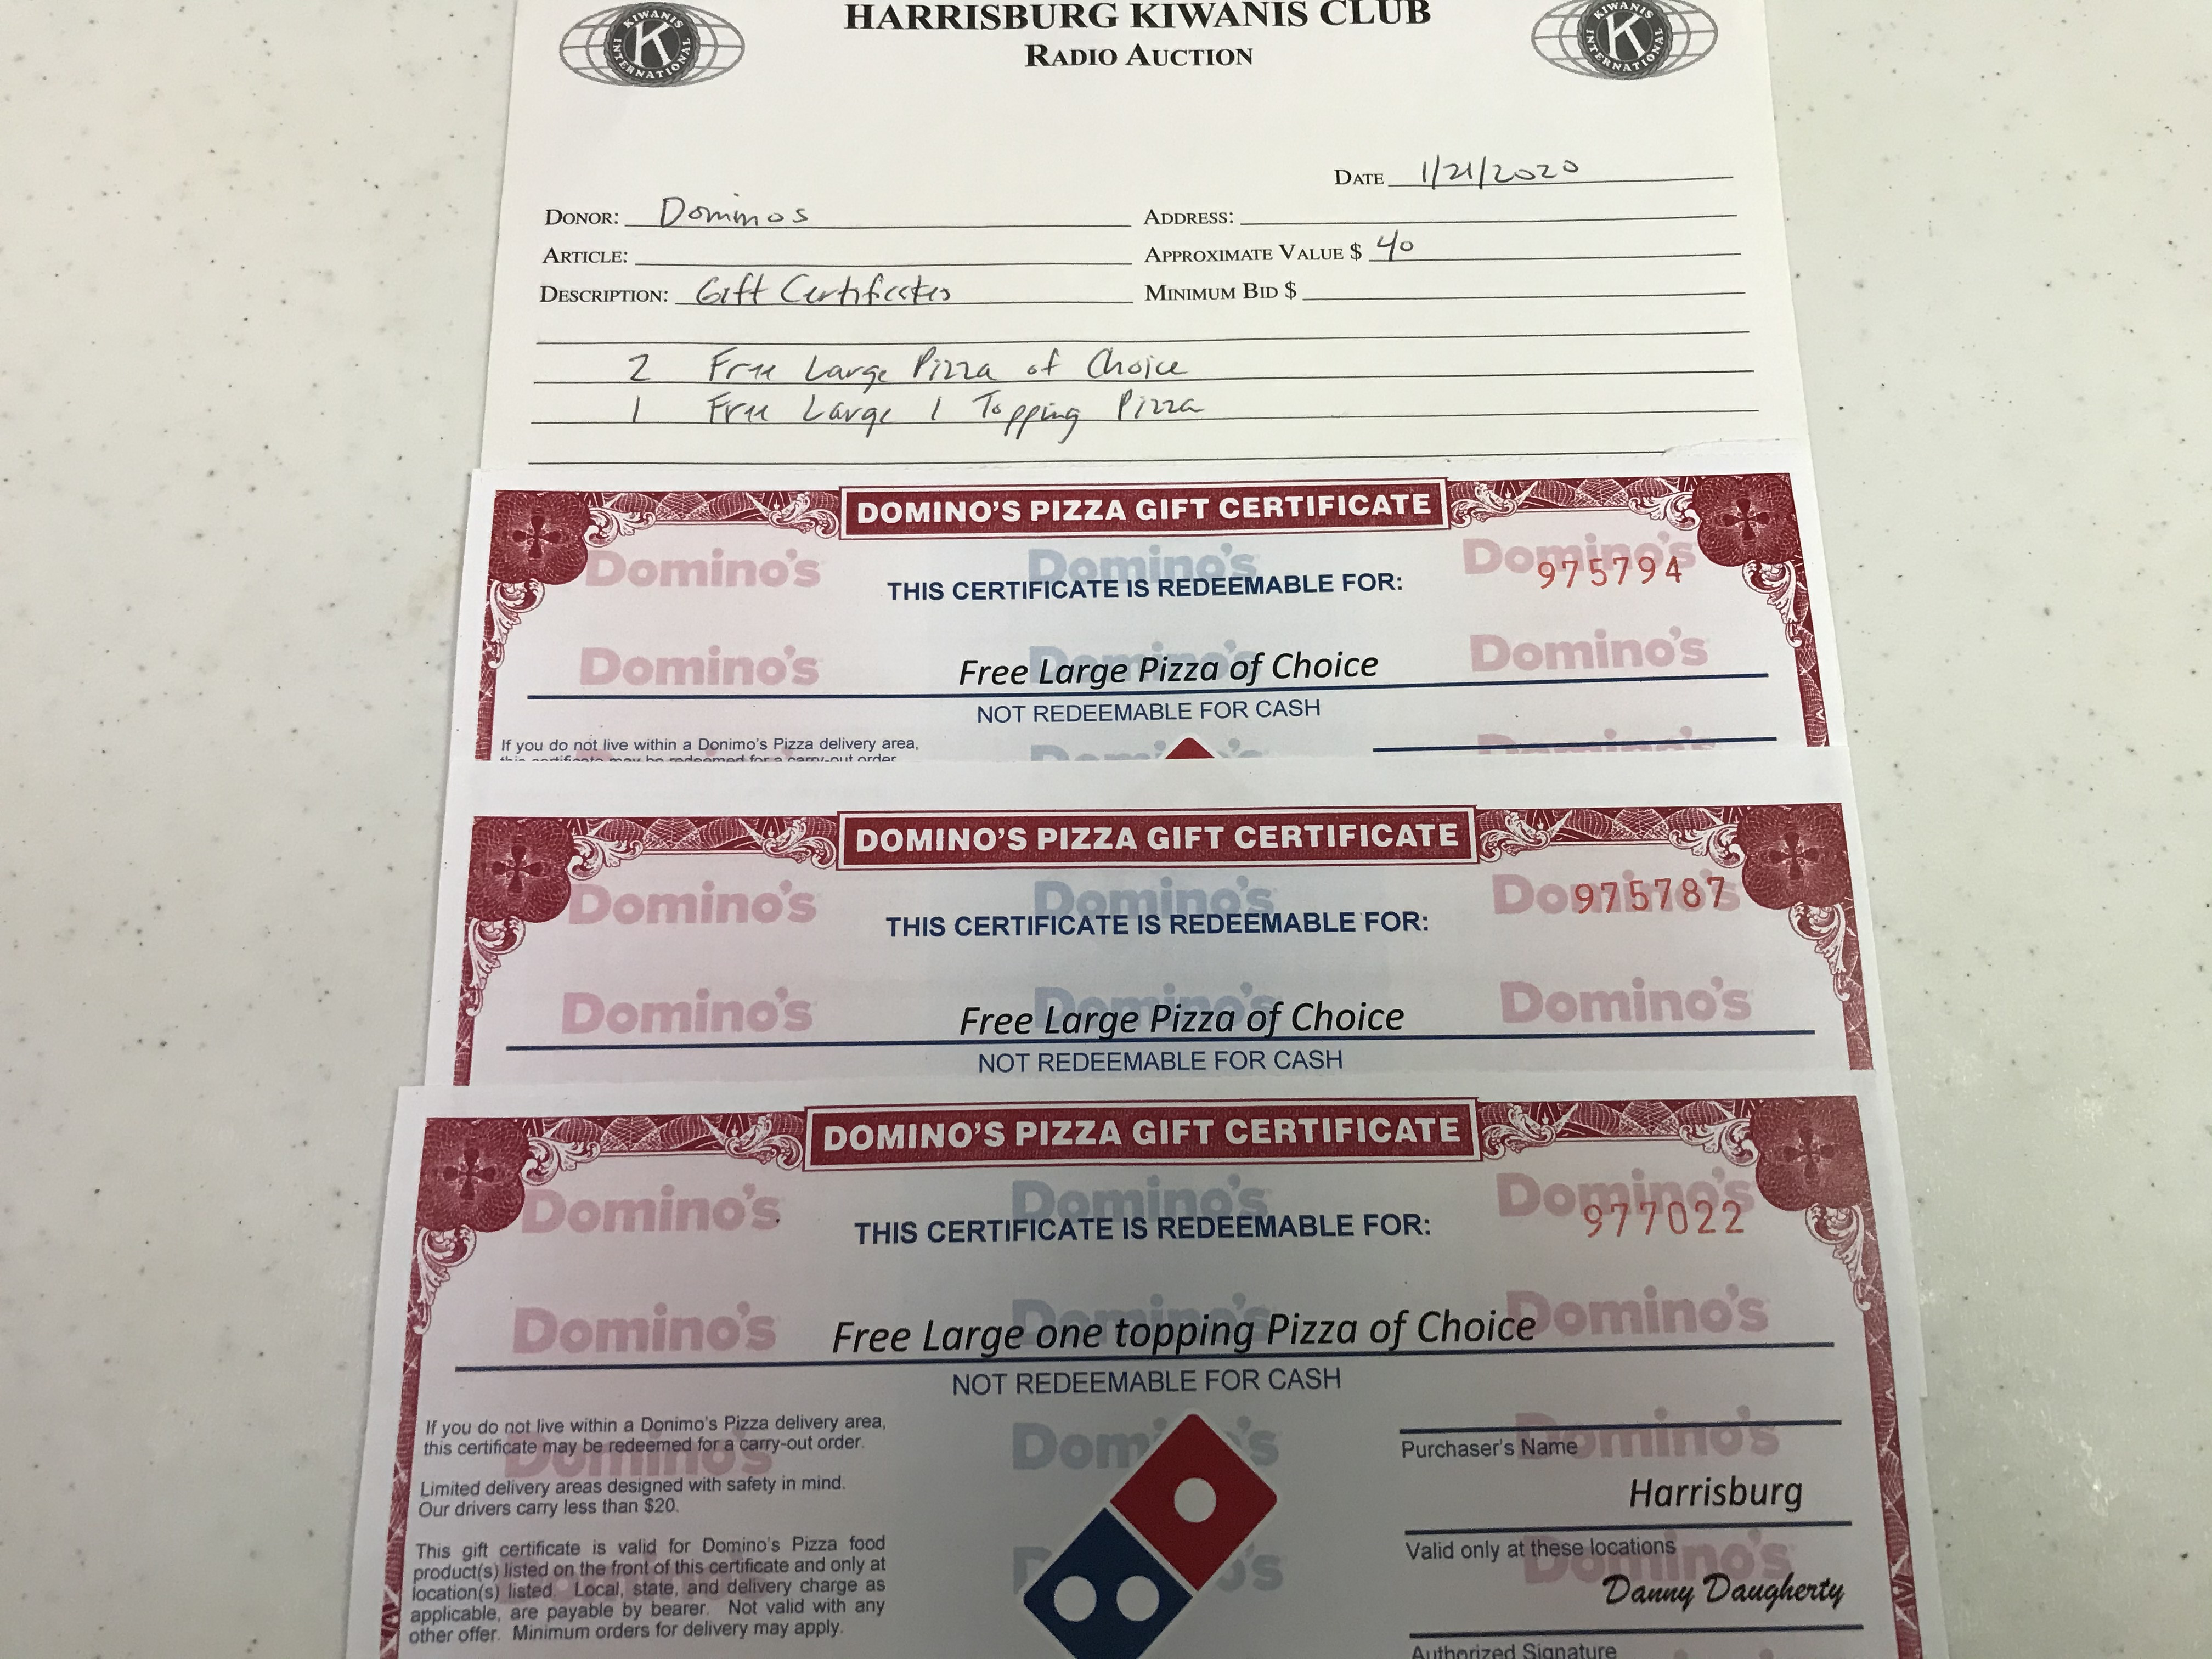 Item 115 - Dominos 2 Free Large Pizza of Choice 1 Free Large 1 Topping Pizza